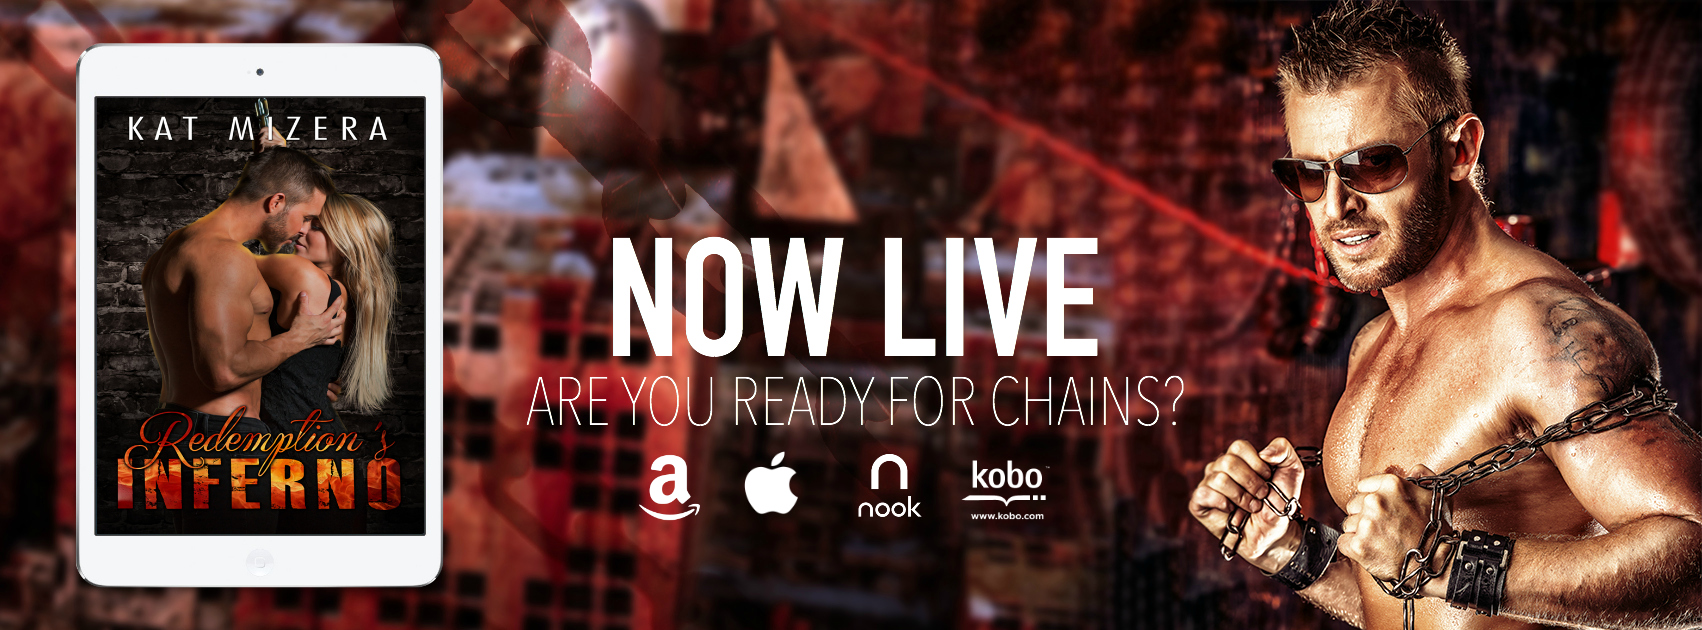 Chains FB_NOWLIVEBANNER